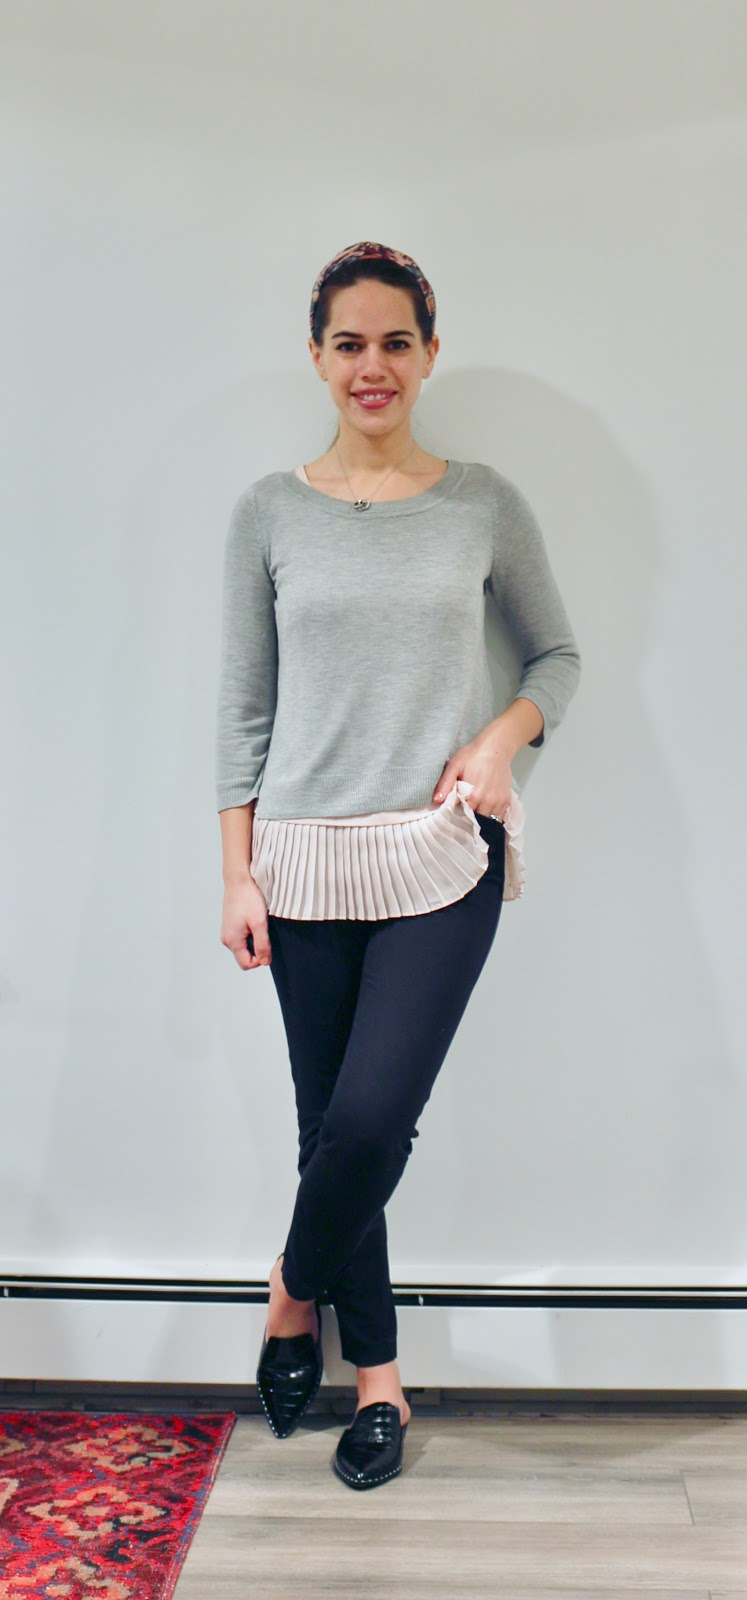 Jules in Flats - Peplum Pleated Tank with Cropped Sweater (Business Casual Winter Workwear on a Budget)